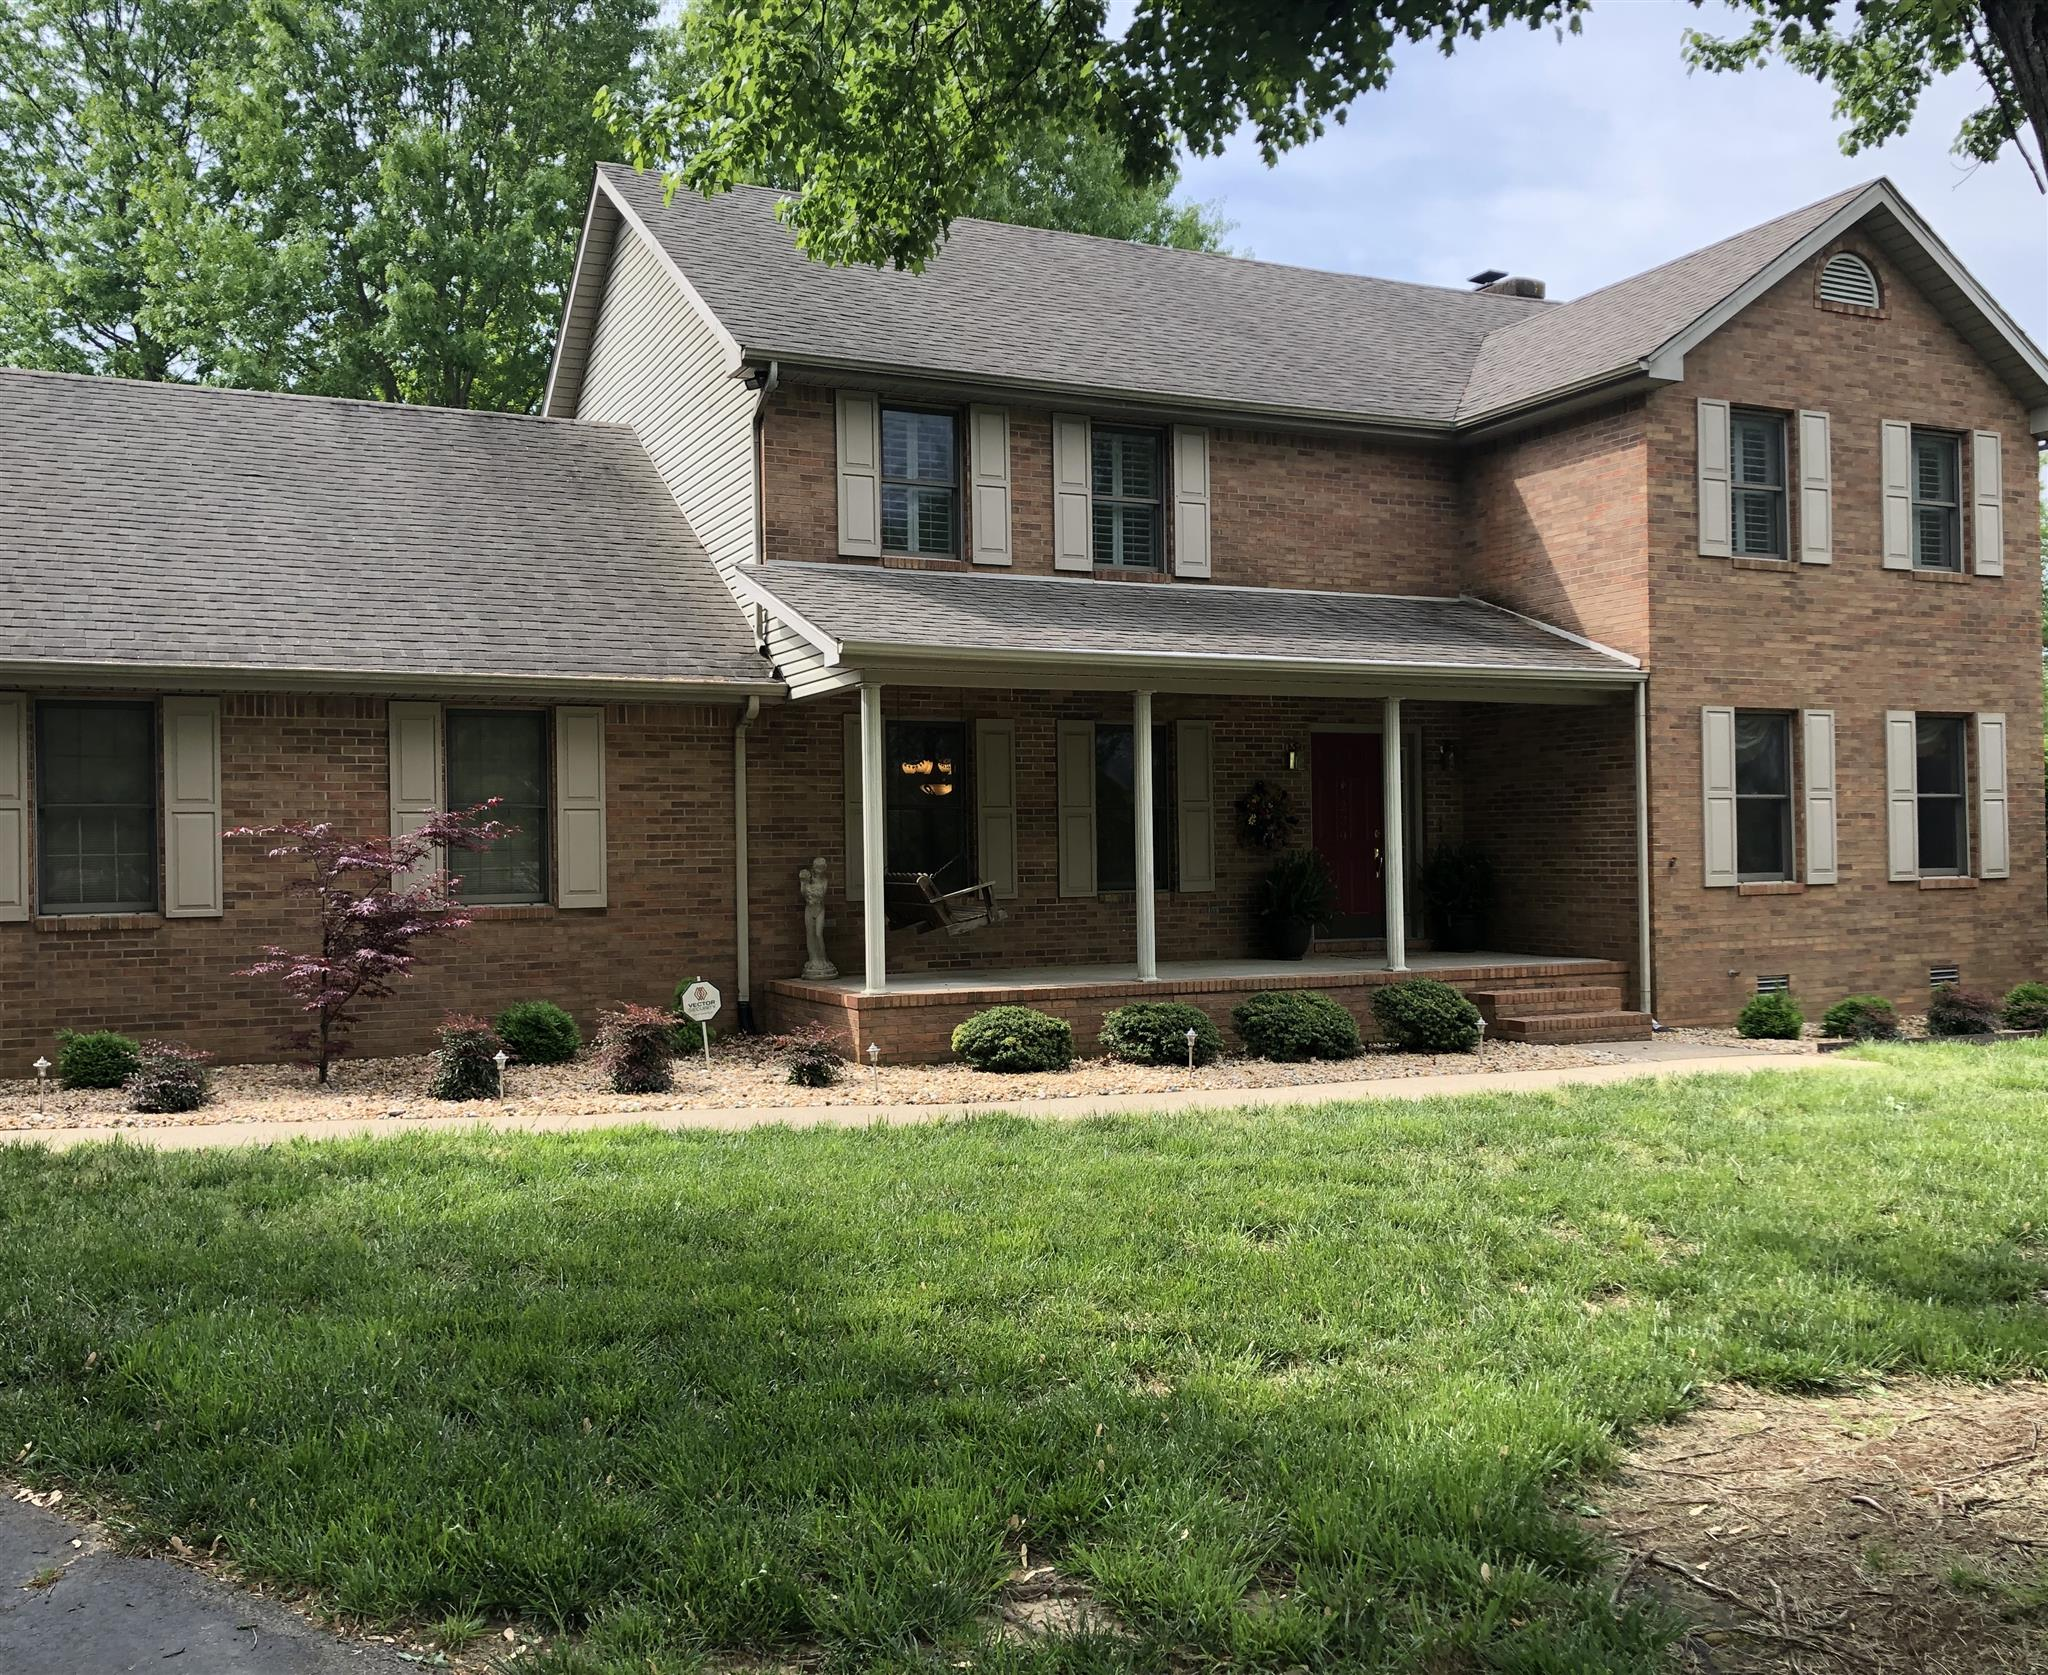 239 Oxford, Hopkinsville, KY 42240 - Hopkinsville, KY real estate listing